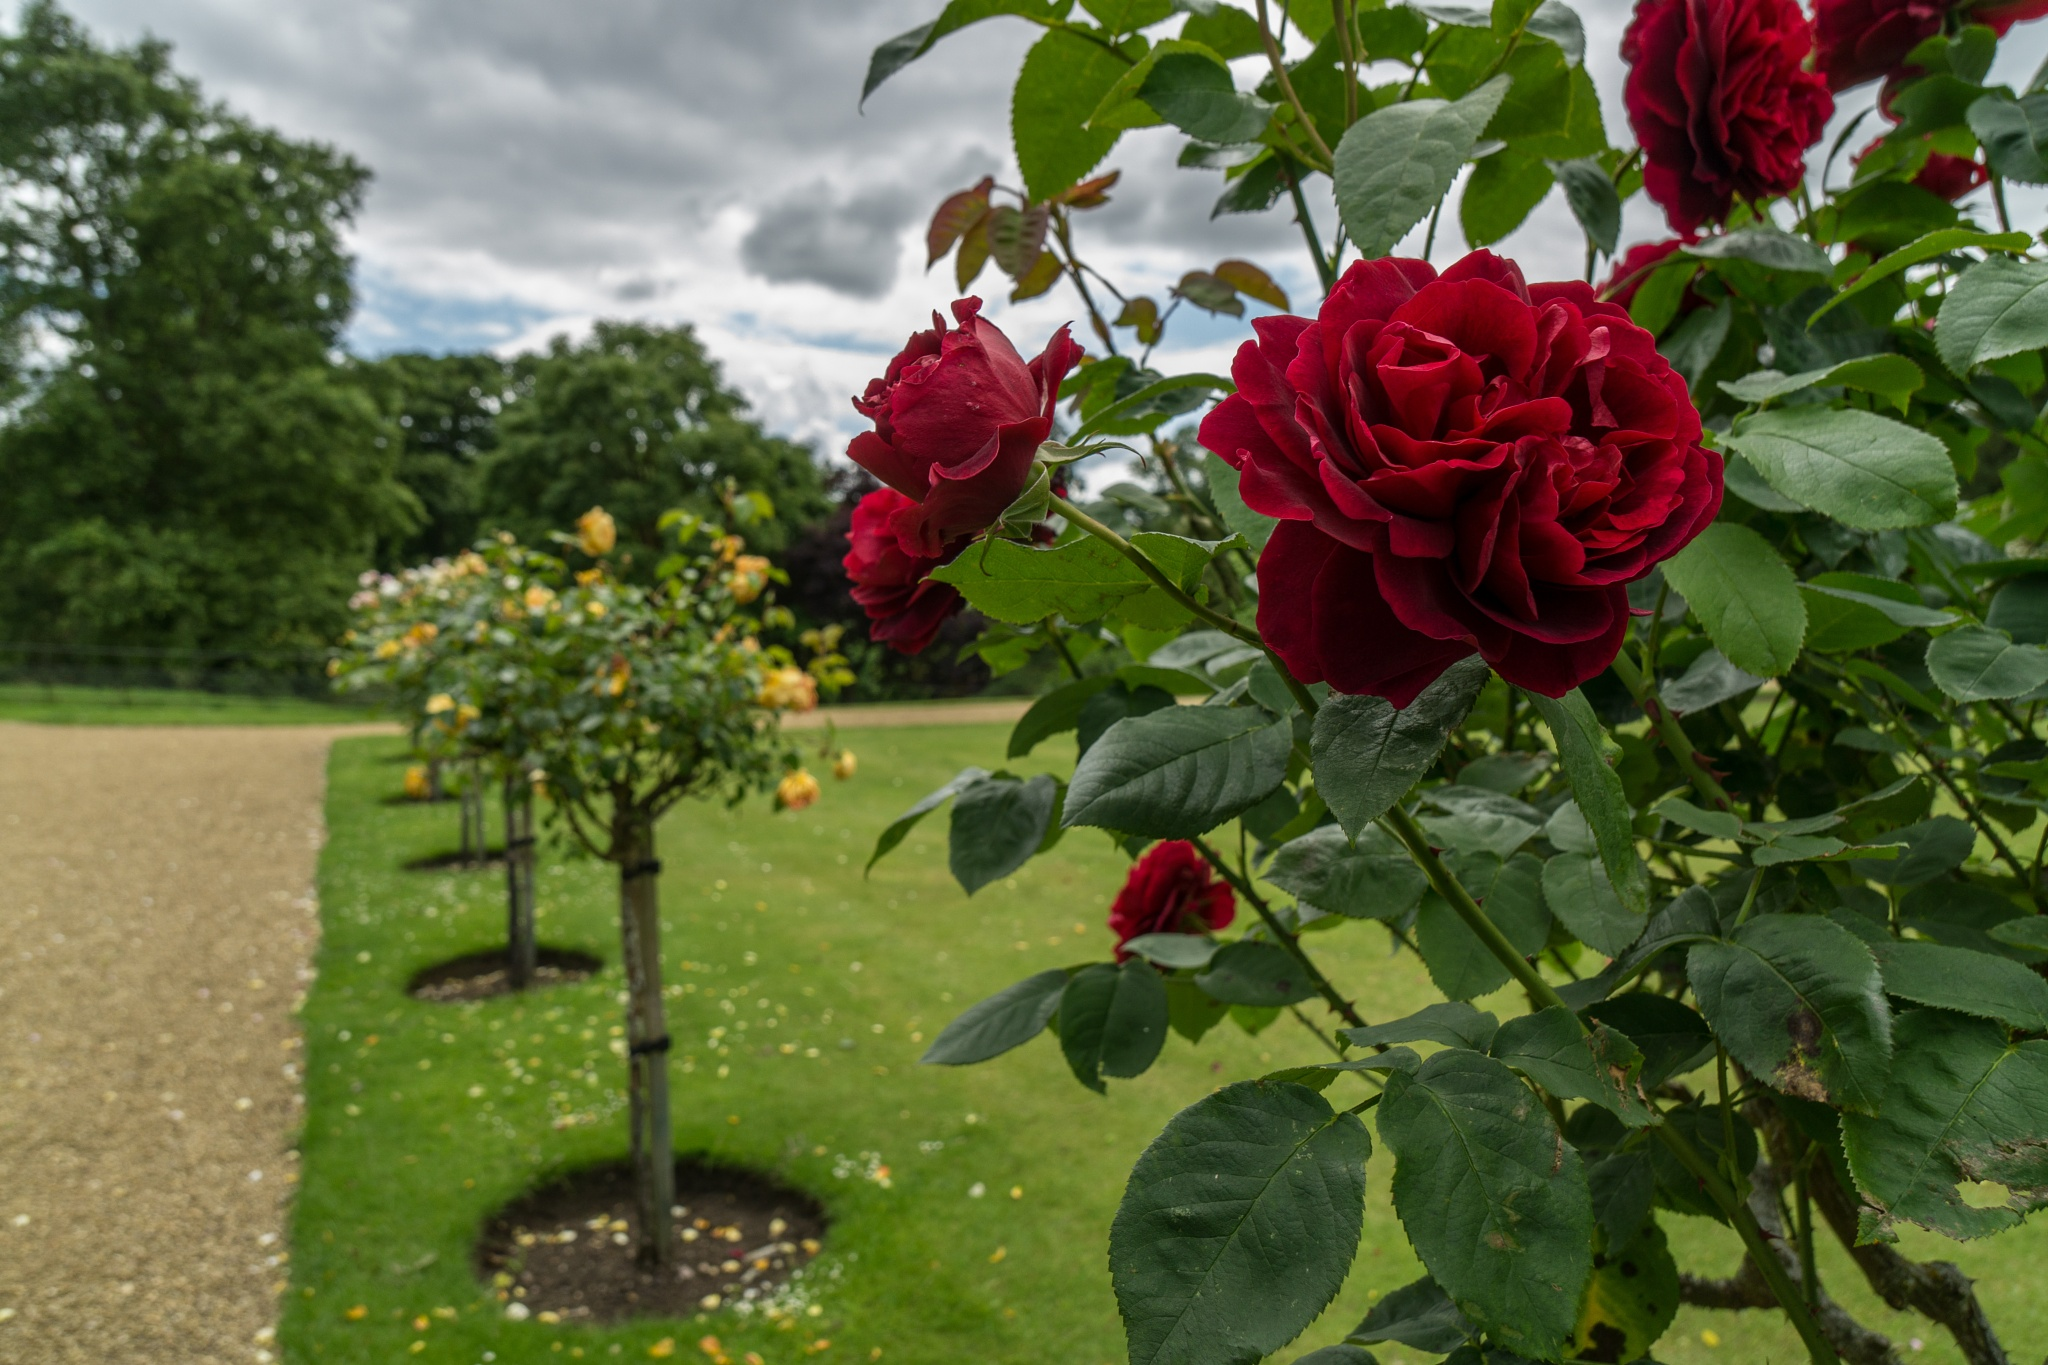 Roses all the way by D Whitehead